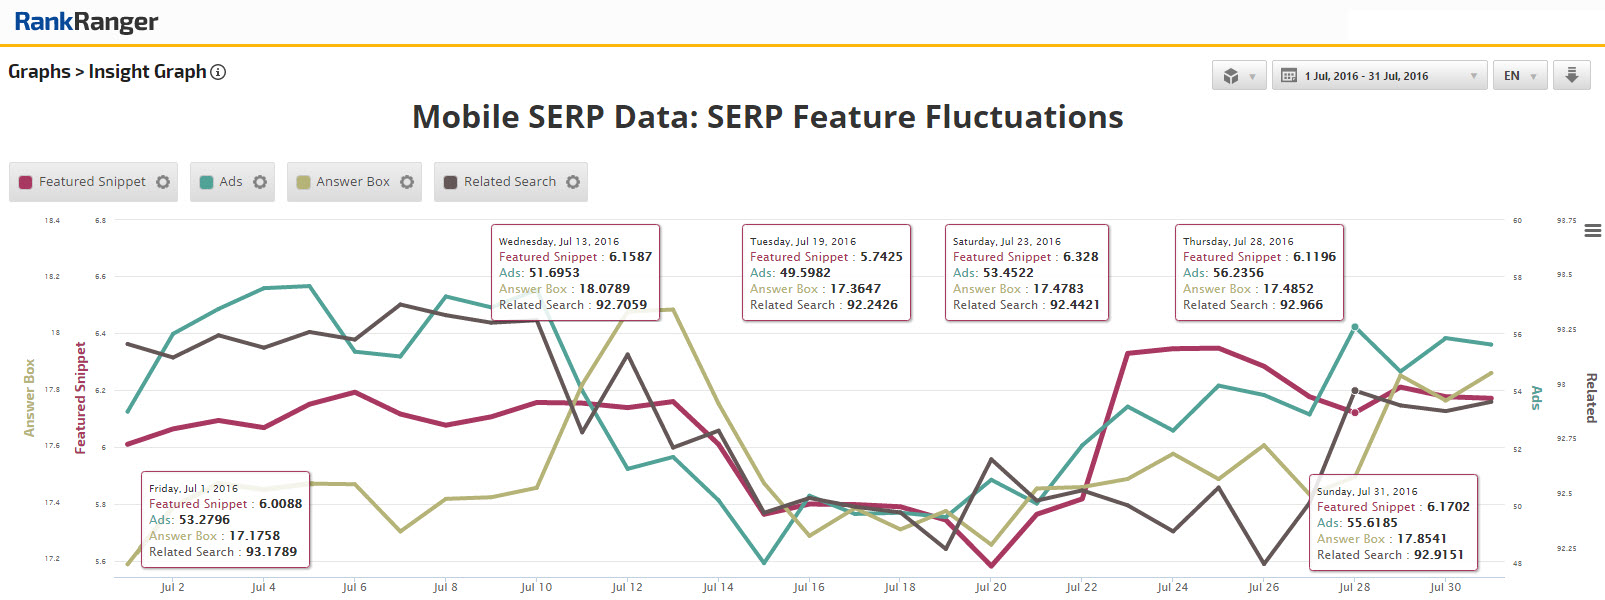 A Second Series of Mobile SERP Feature Fluctuations